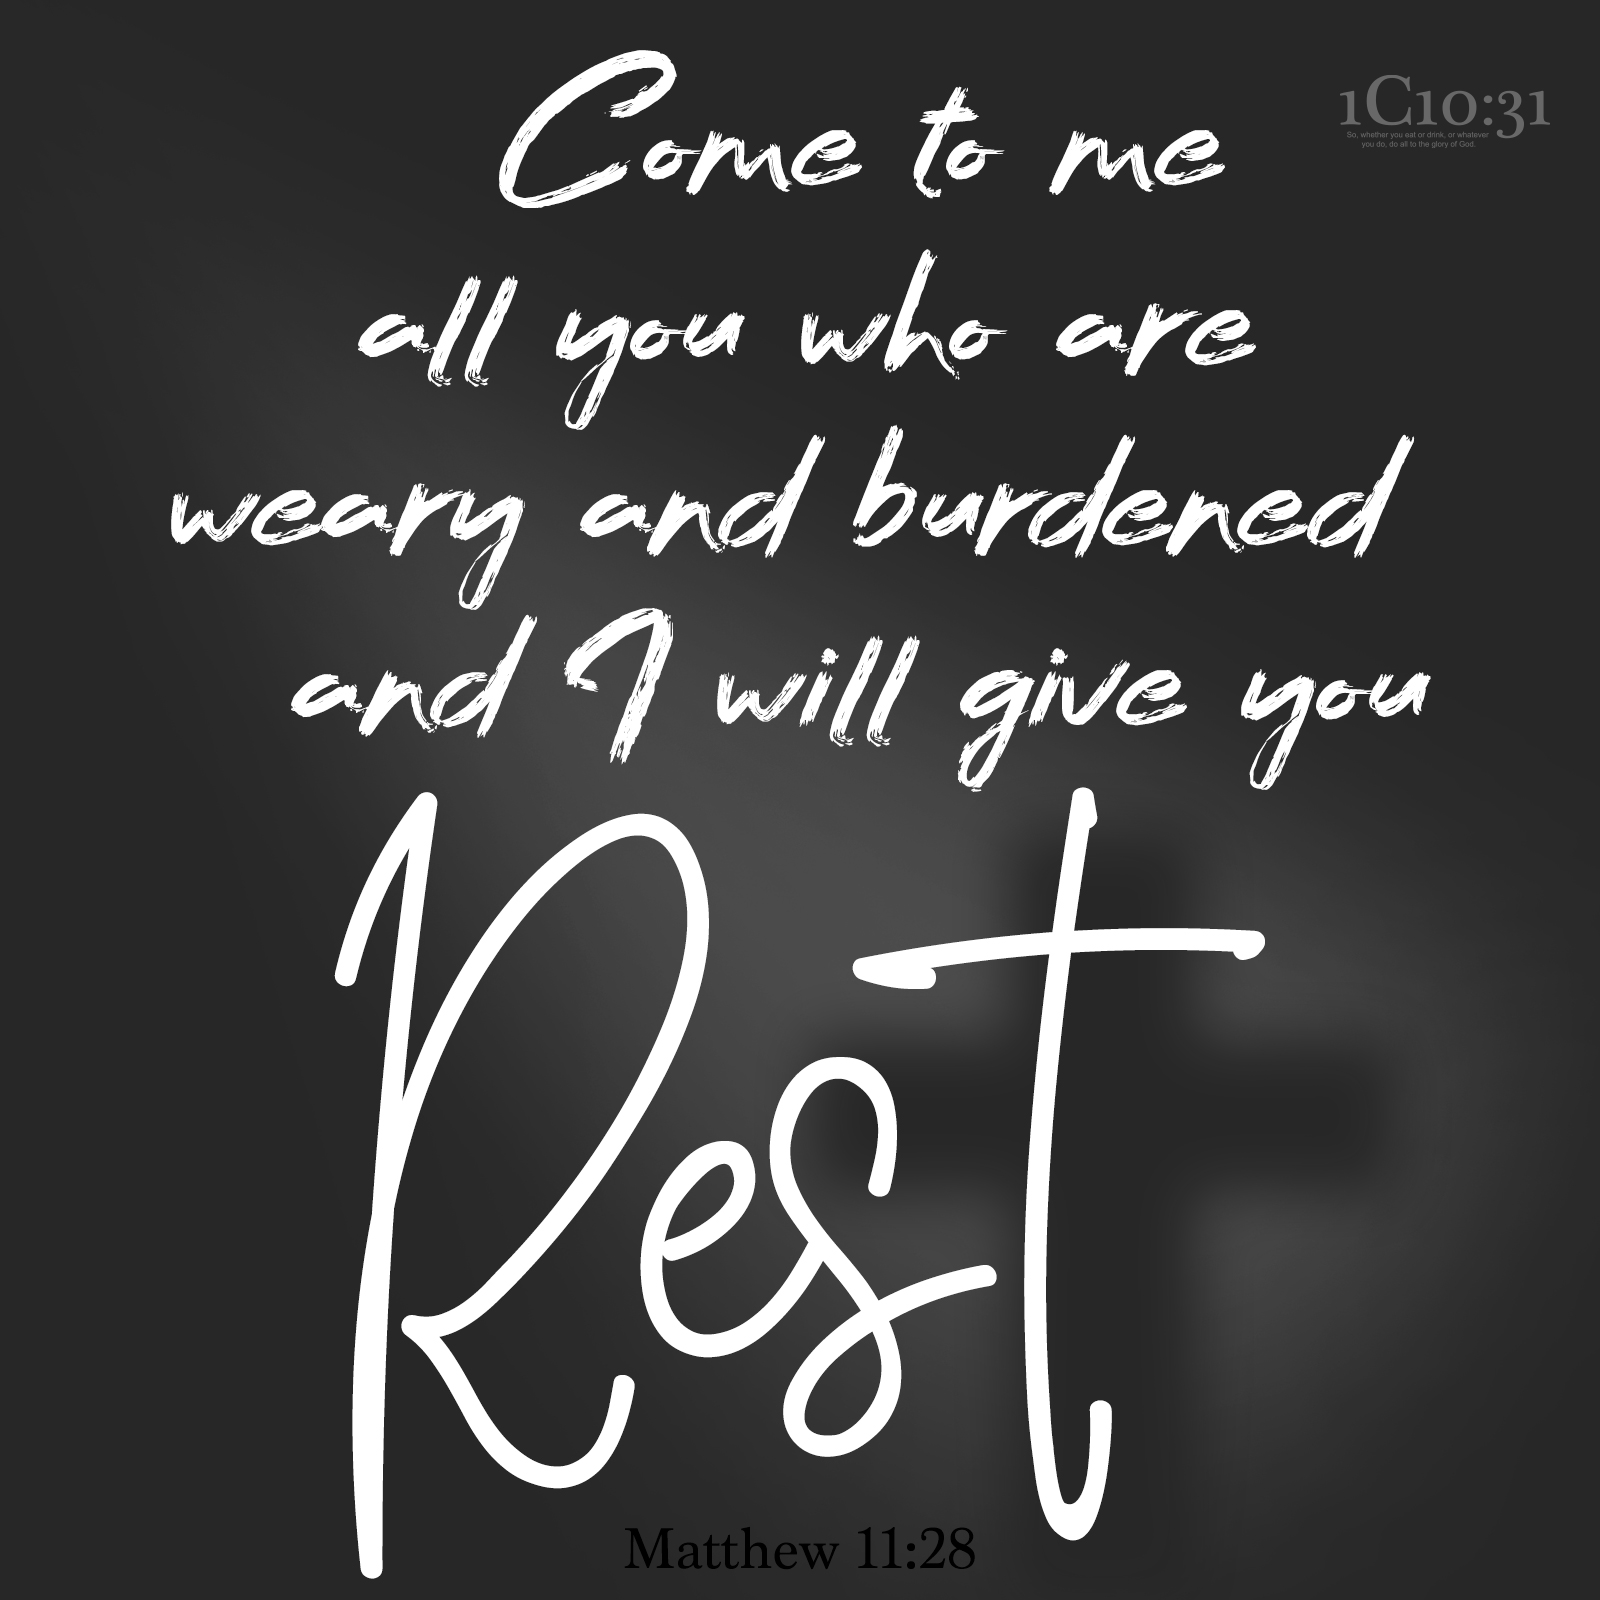 """Matthew 11:28 """"Come to me, all you who are weary and burdened, and I will give you rest."""